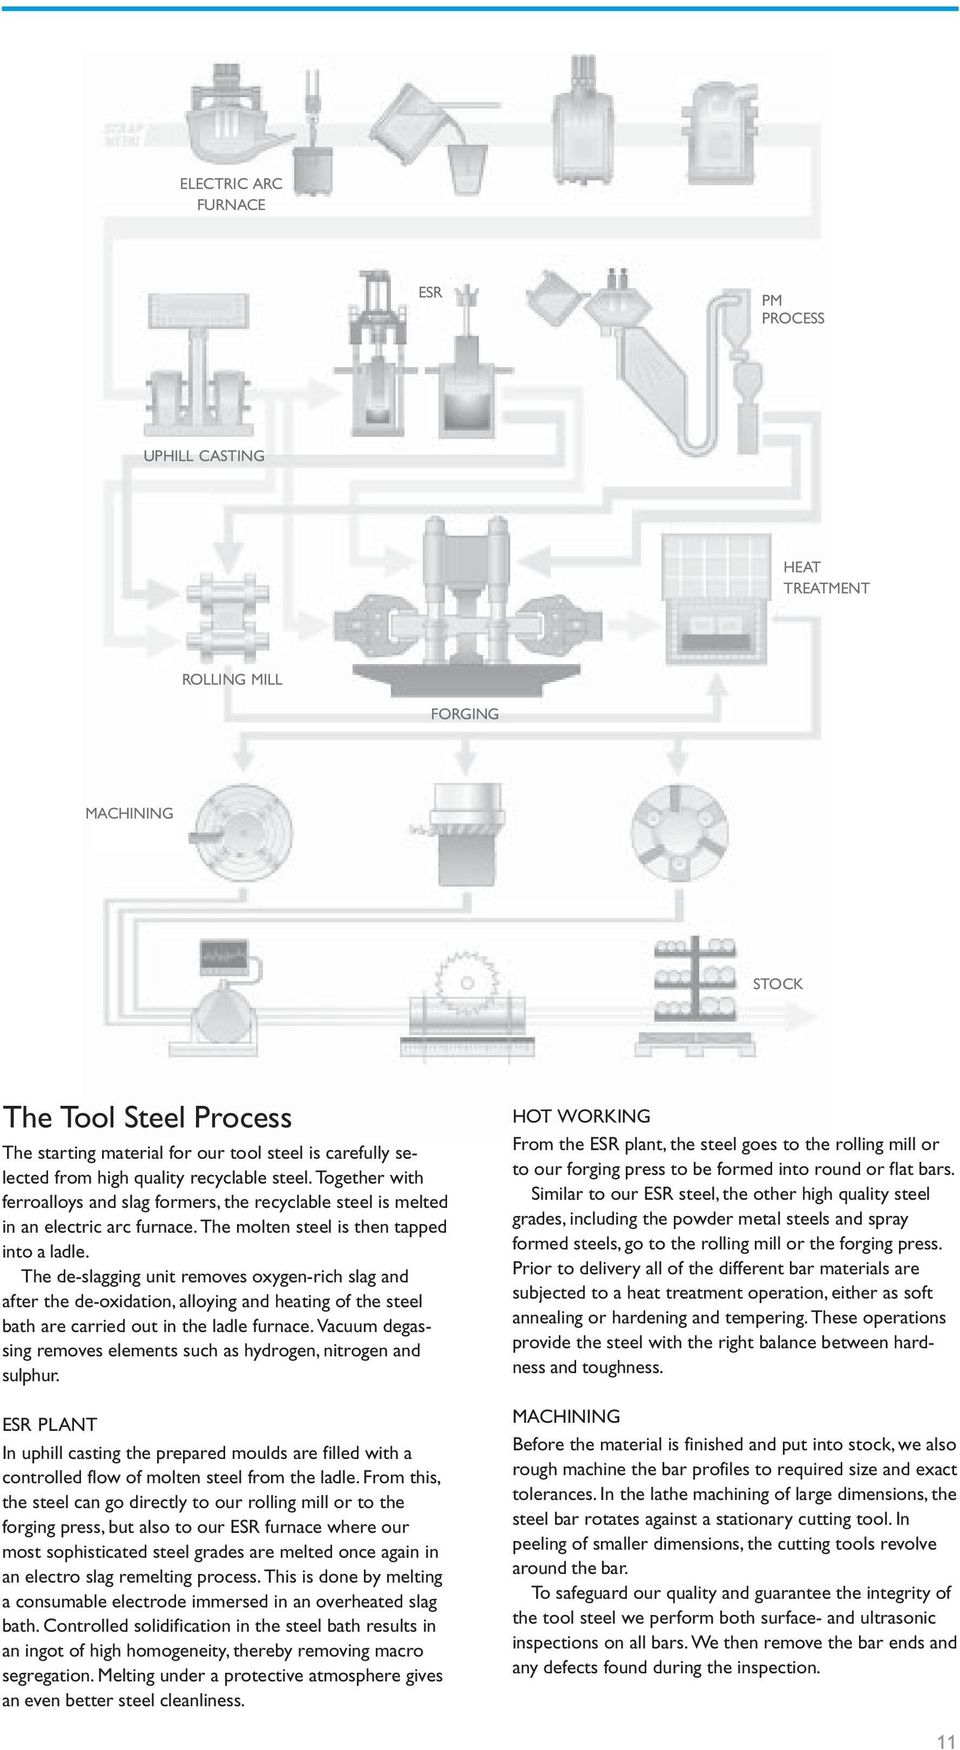 The de-slagging unit removes oxygen-rich slag and after the de-oxidation, alloying and heating of the steel bath are carried out in the ladle furnace.